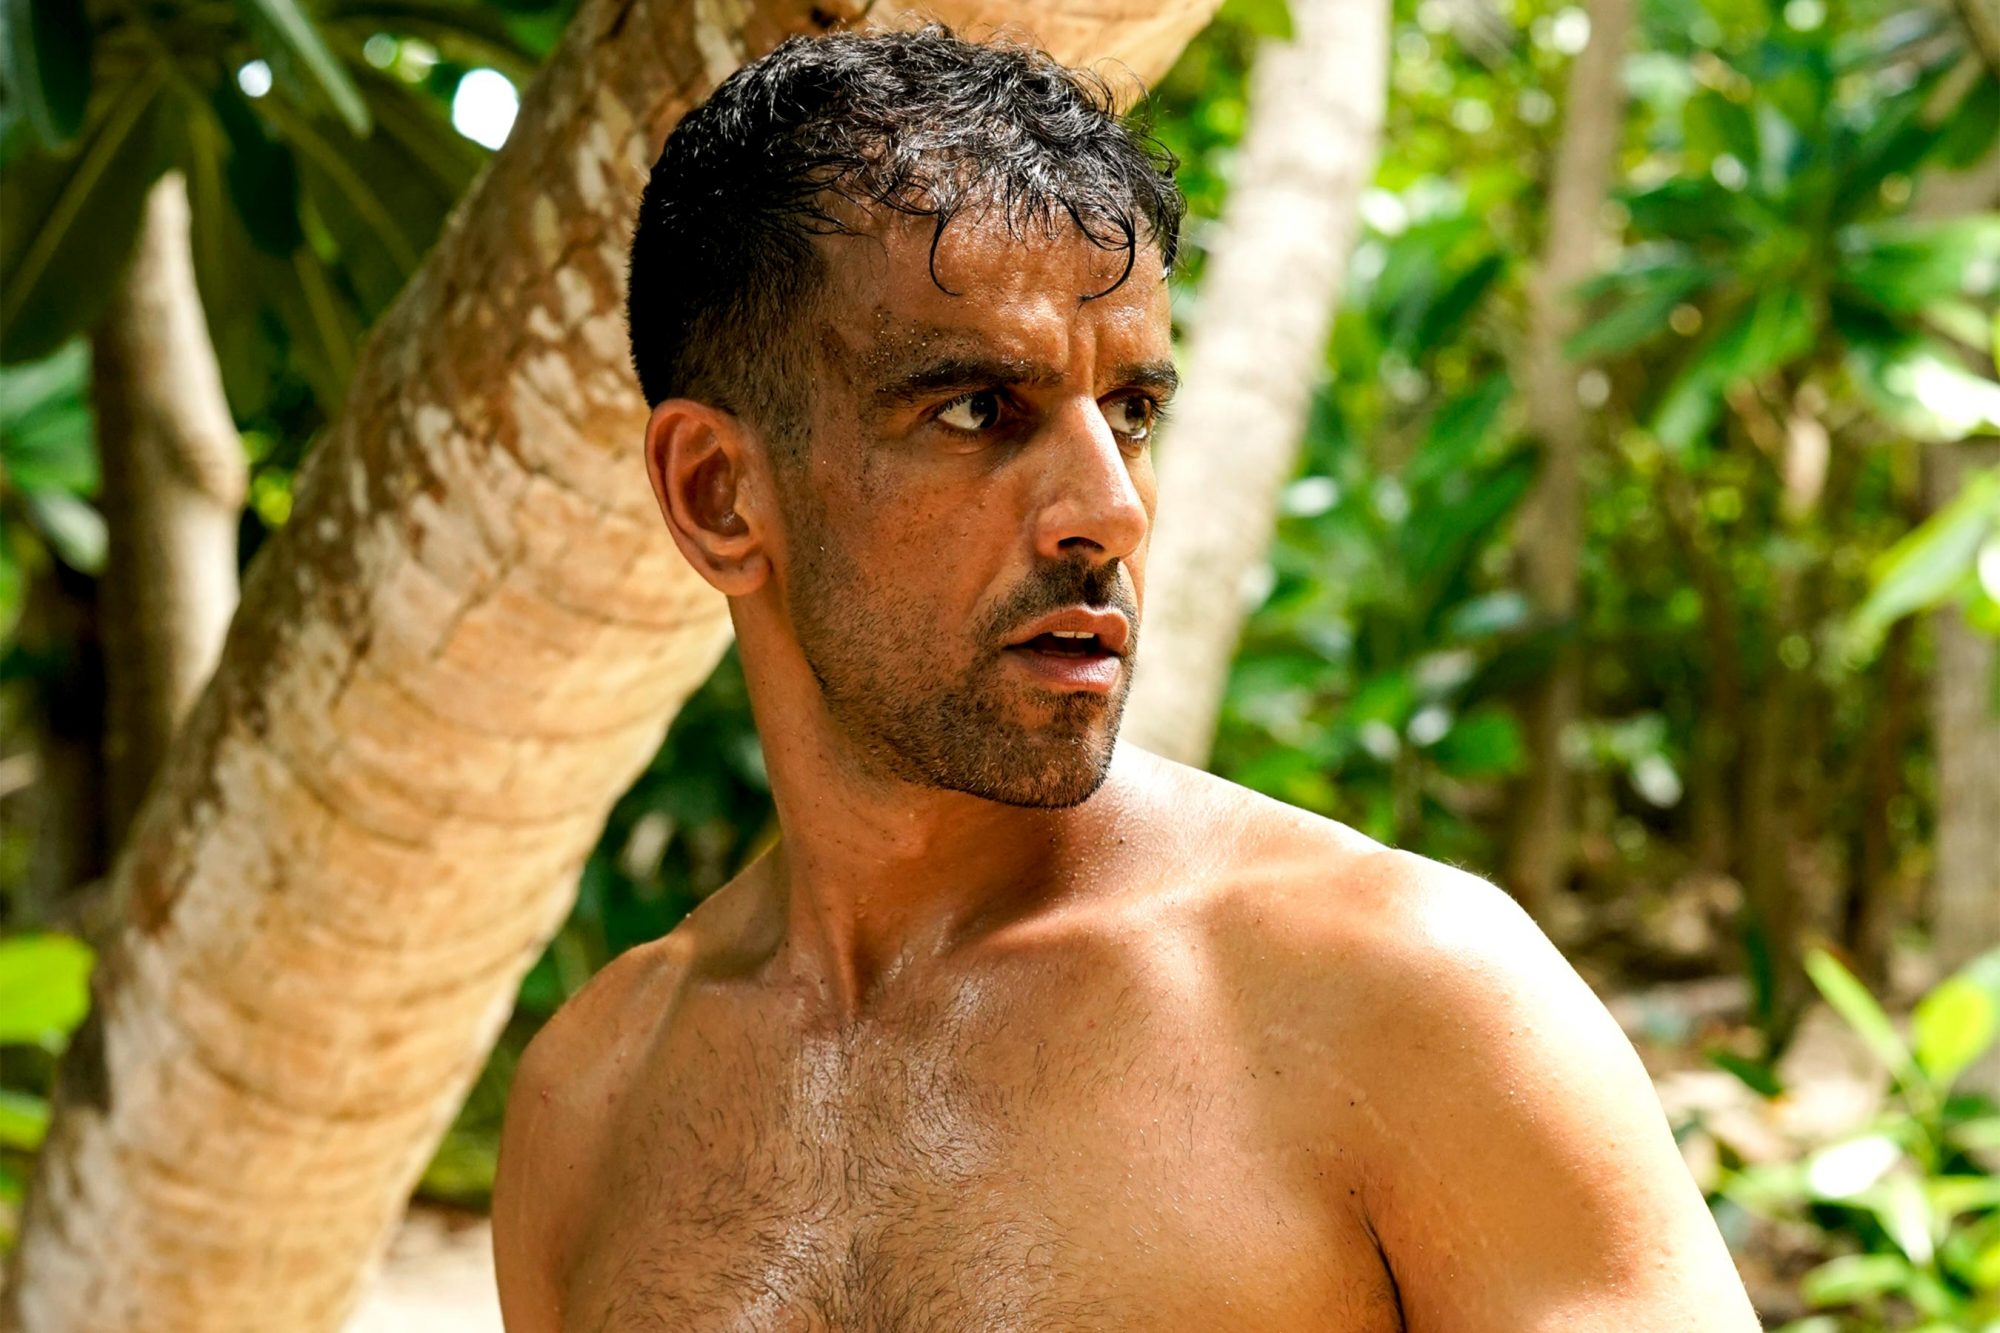 """""""I Vote You Out and That's It"""" - Ronnie Bardah on SURVIVOR: Island of Idols when the Emmy Award-winning series returns for its 39th season with a special 90-minute premieres Wednesday, Sept. 25 (8:00-9:30 PM, ET/PT) on the CBS Television Network. Photo: Robert Voets/CBS Entertainment ©2019 CBS Broadcasting, Inc. All Rights Reserved."""